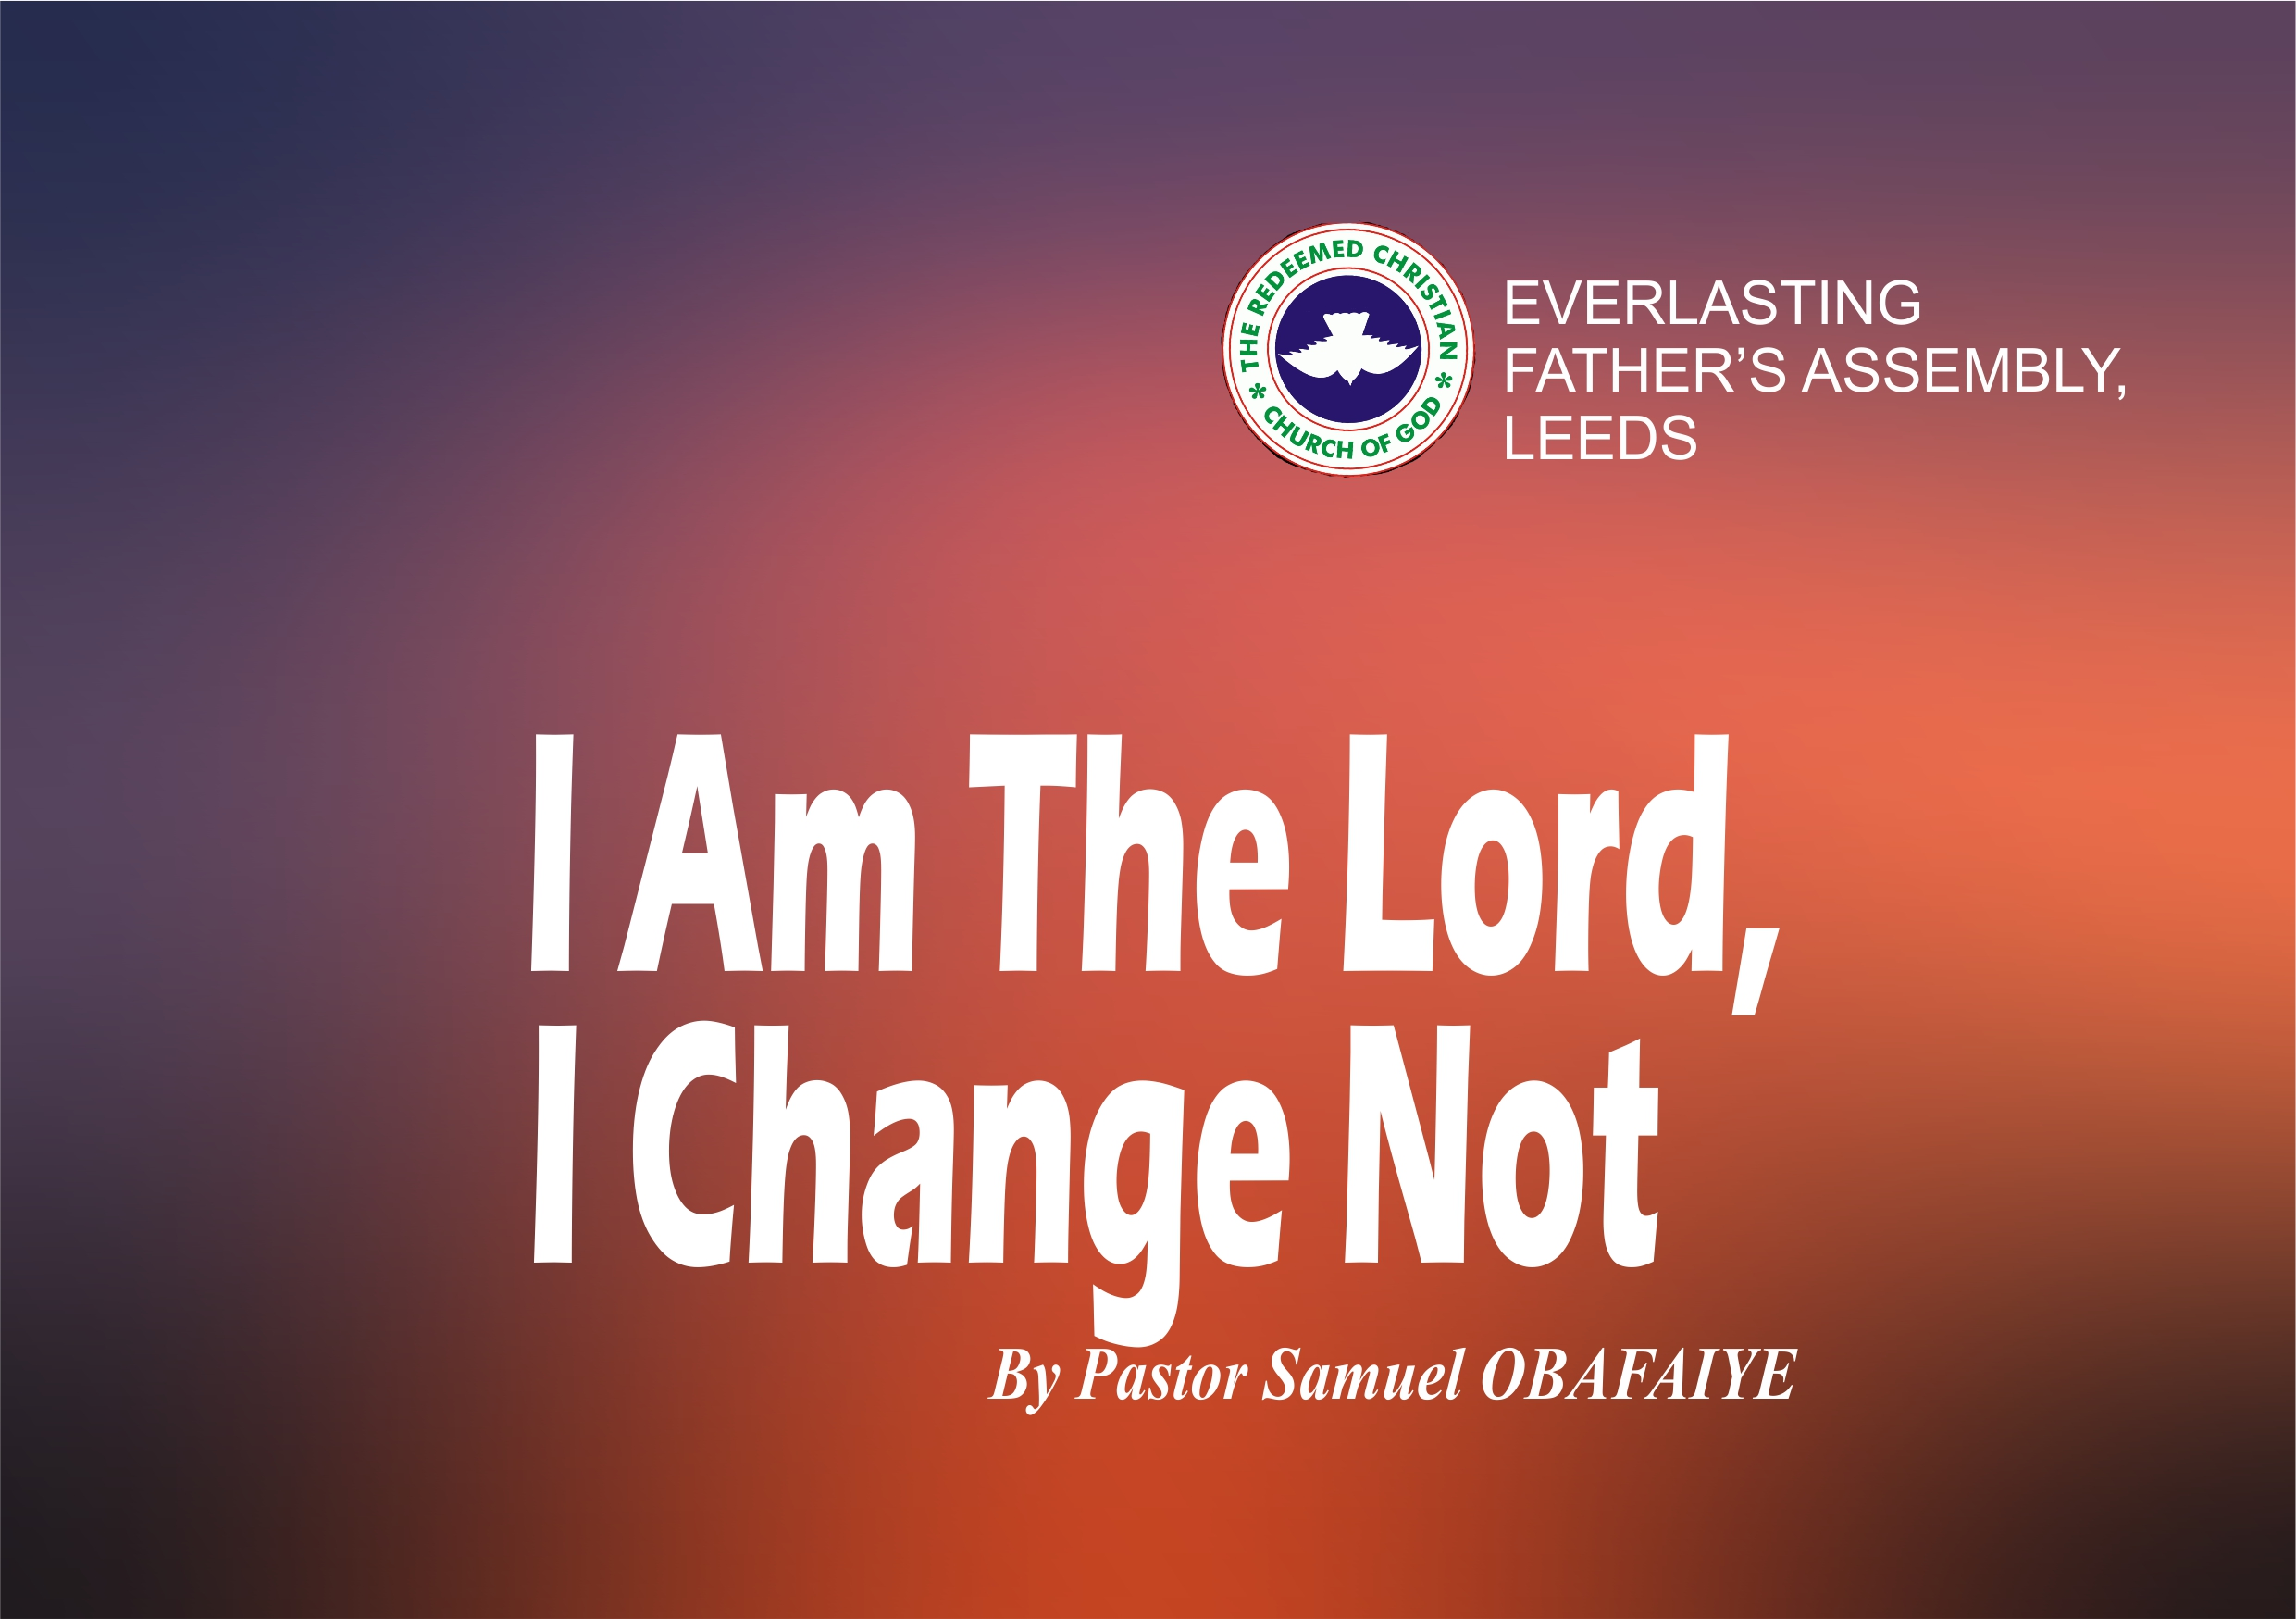 I Am The Lord, I Change Not, by Pastor Samuel Obafaiye